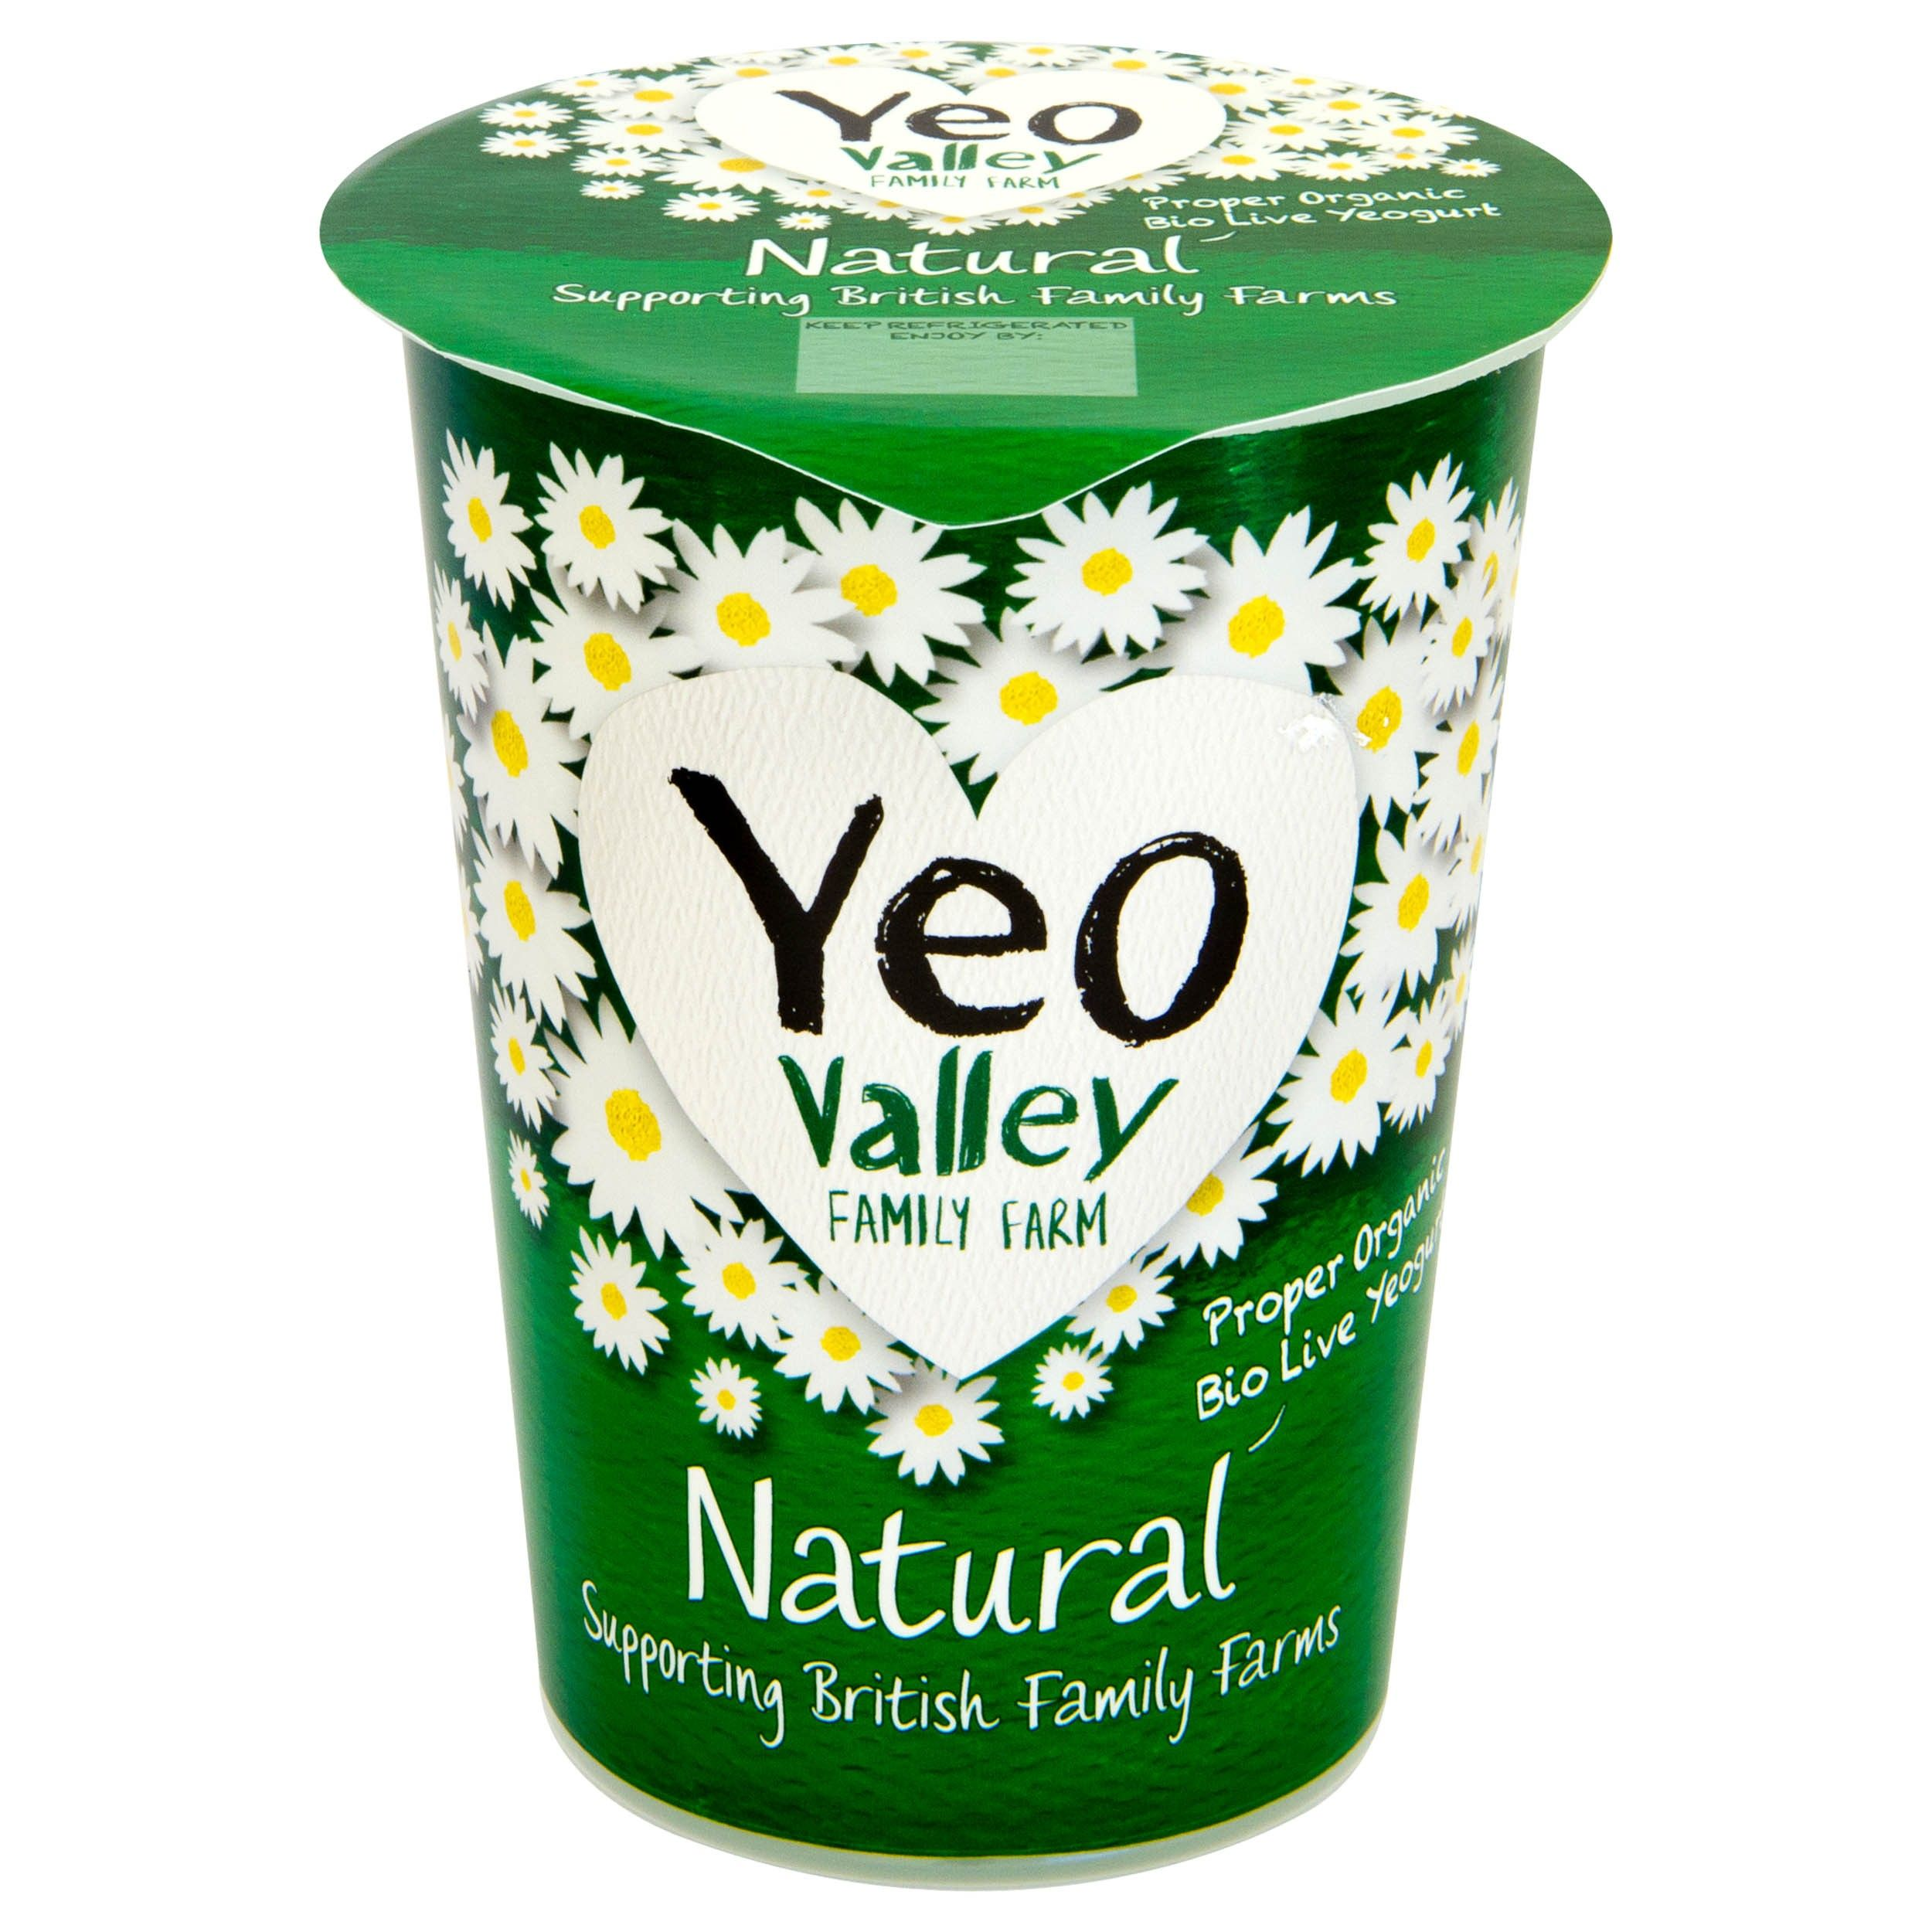 Is Yeo Valley Natural Yogurt Good For You